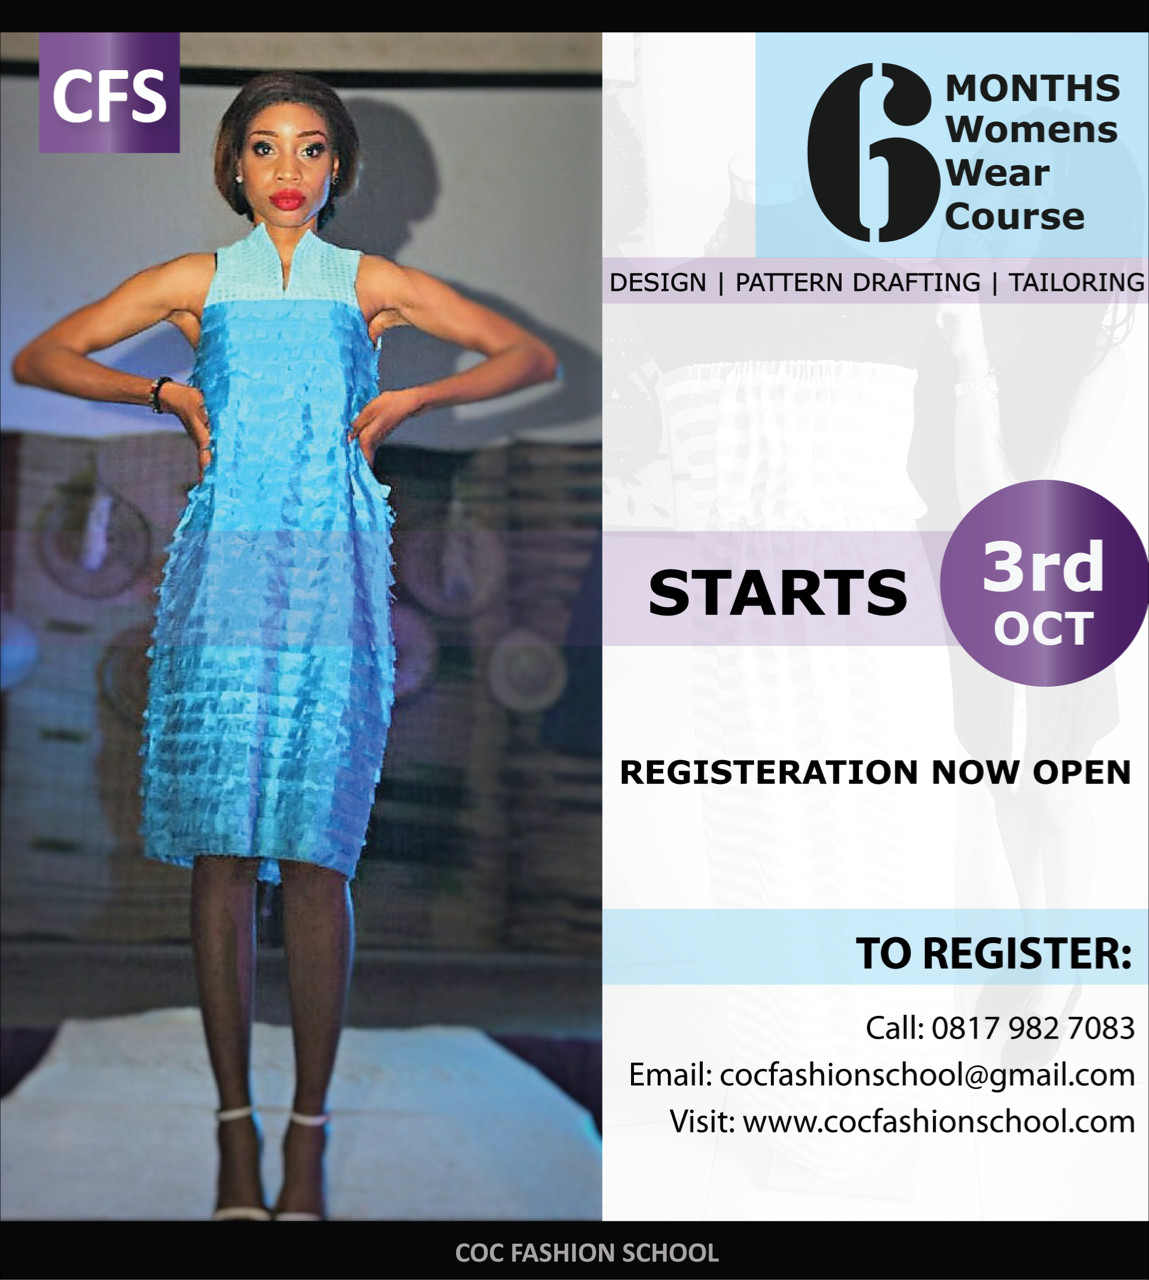 Are You An Aspiring Fashion Designer Be 1 Of 10 People To Register For Coc 6 Months Fashion School Registration Ends Friday September 30th Bellanaija